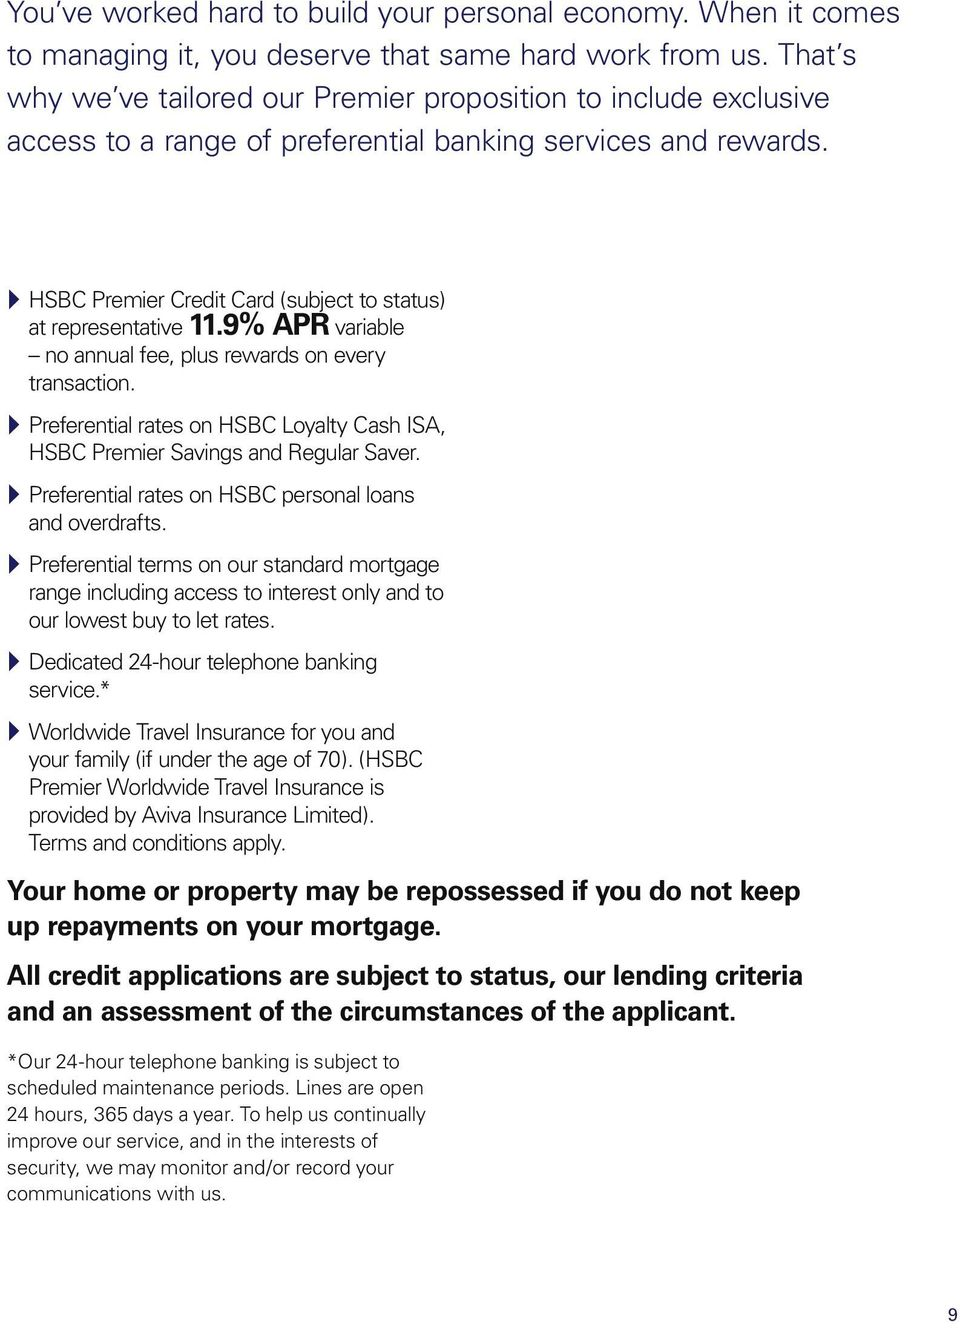 } HSBC Premier Credit Card (subject to status) at representative 11.9% APR variable no annual fee, plus rewards on every transaction.